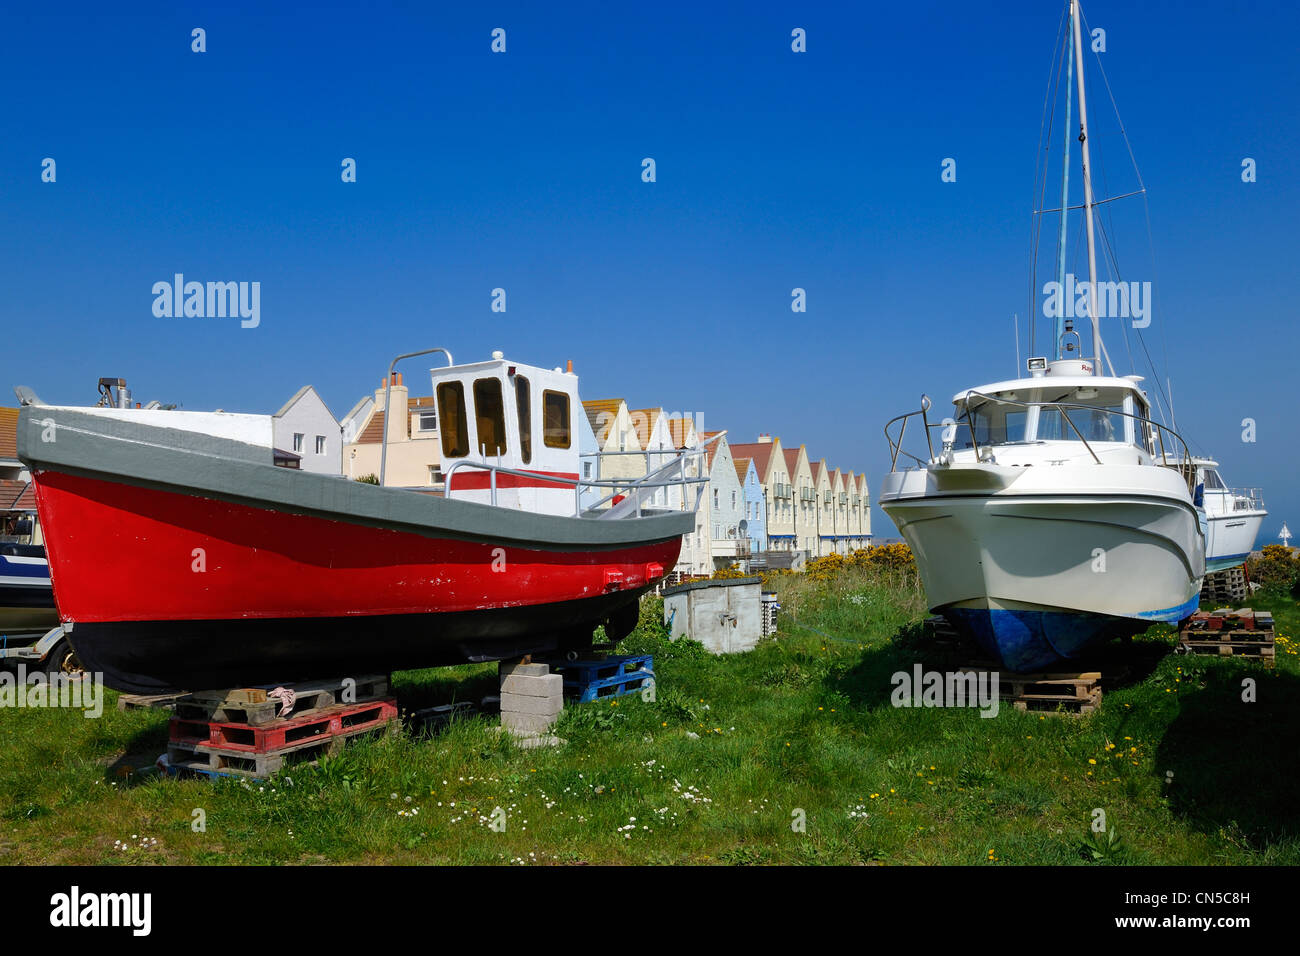 United Kingdom, Channel islands, Alderney, boat on dry-dock with in the Harbour Stock Photo